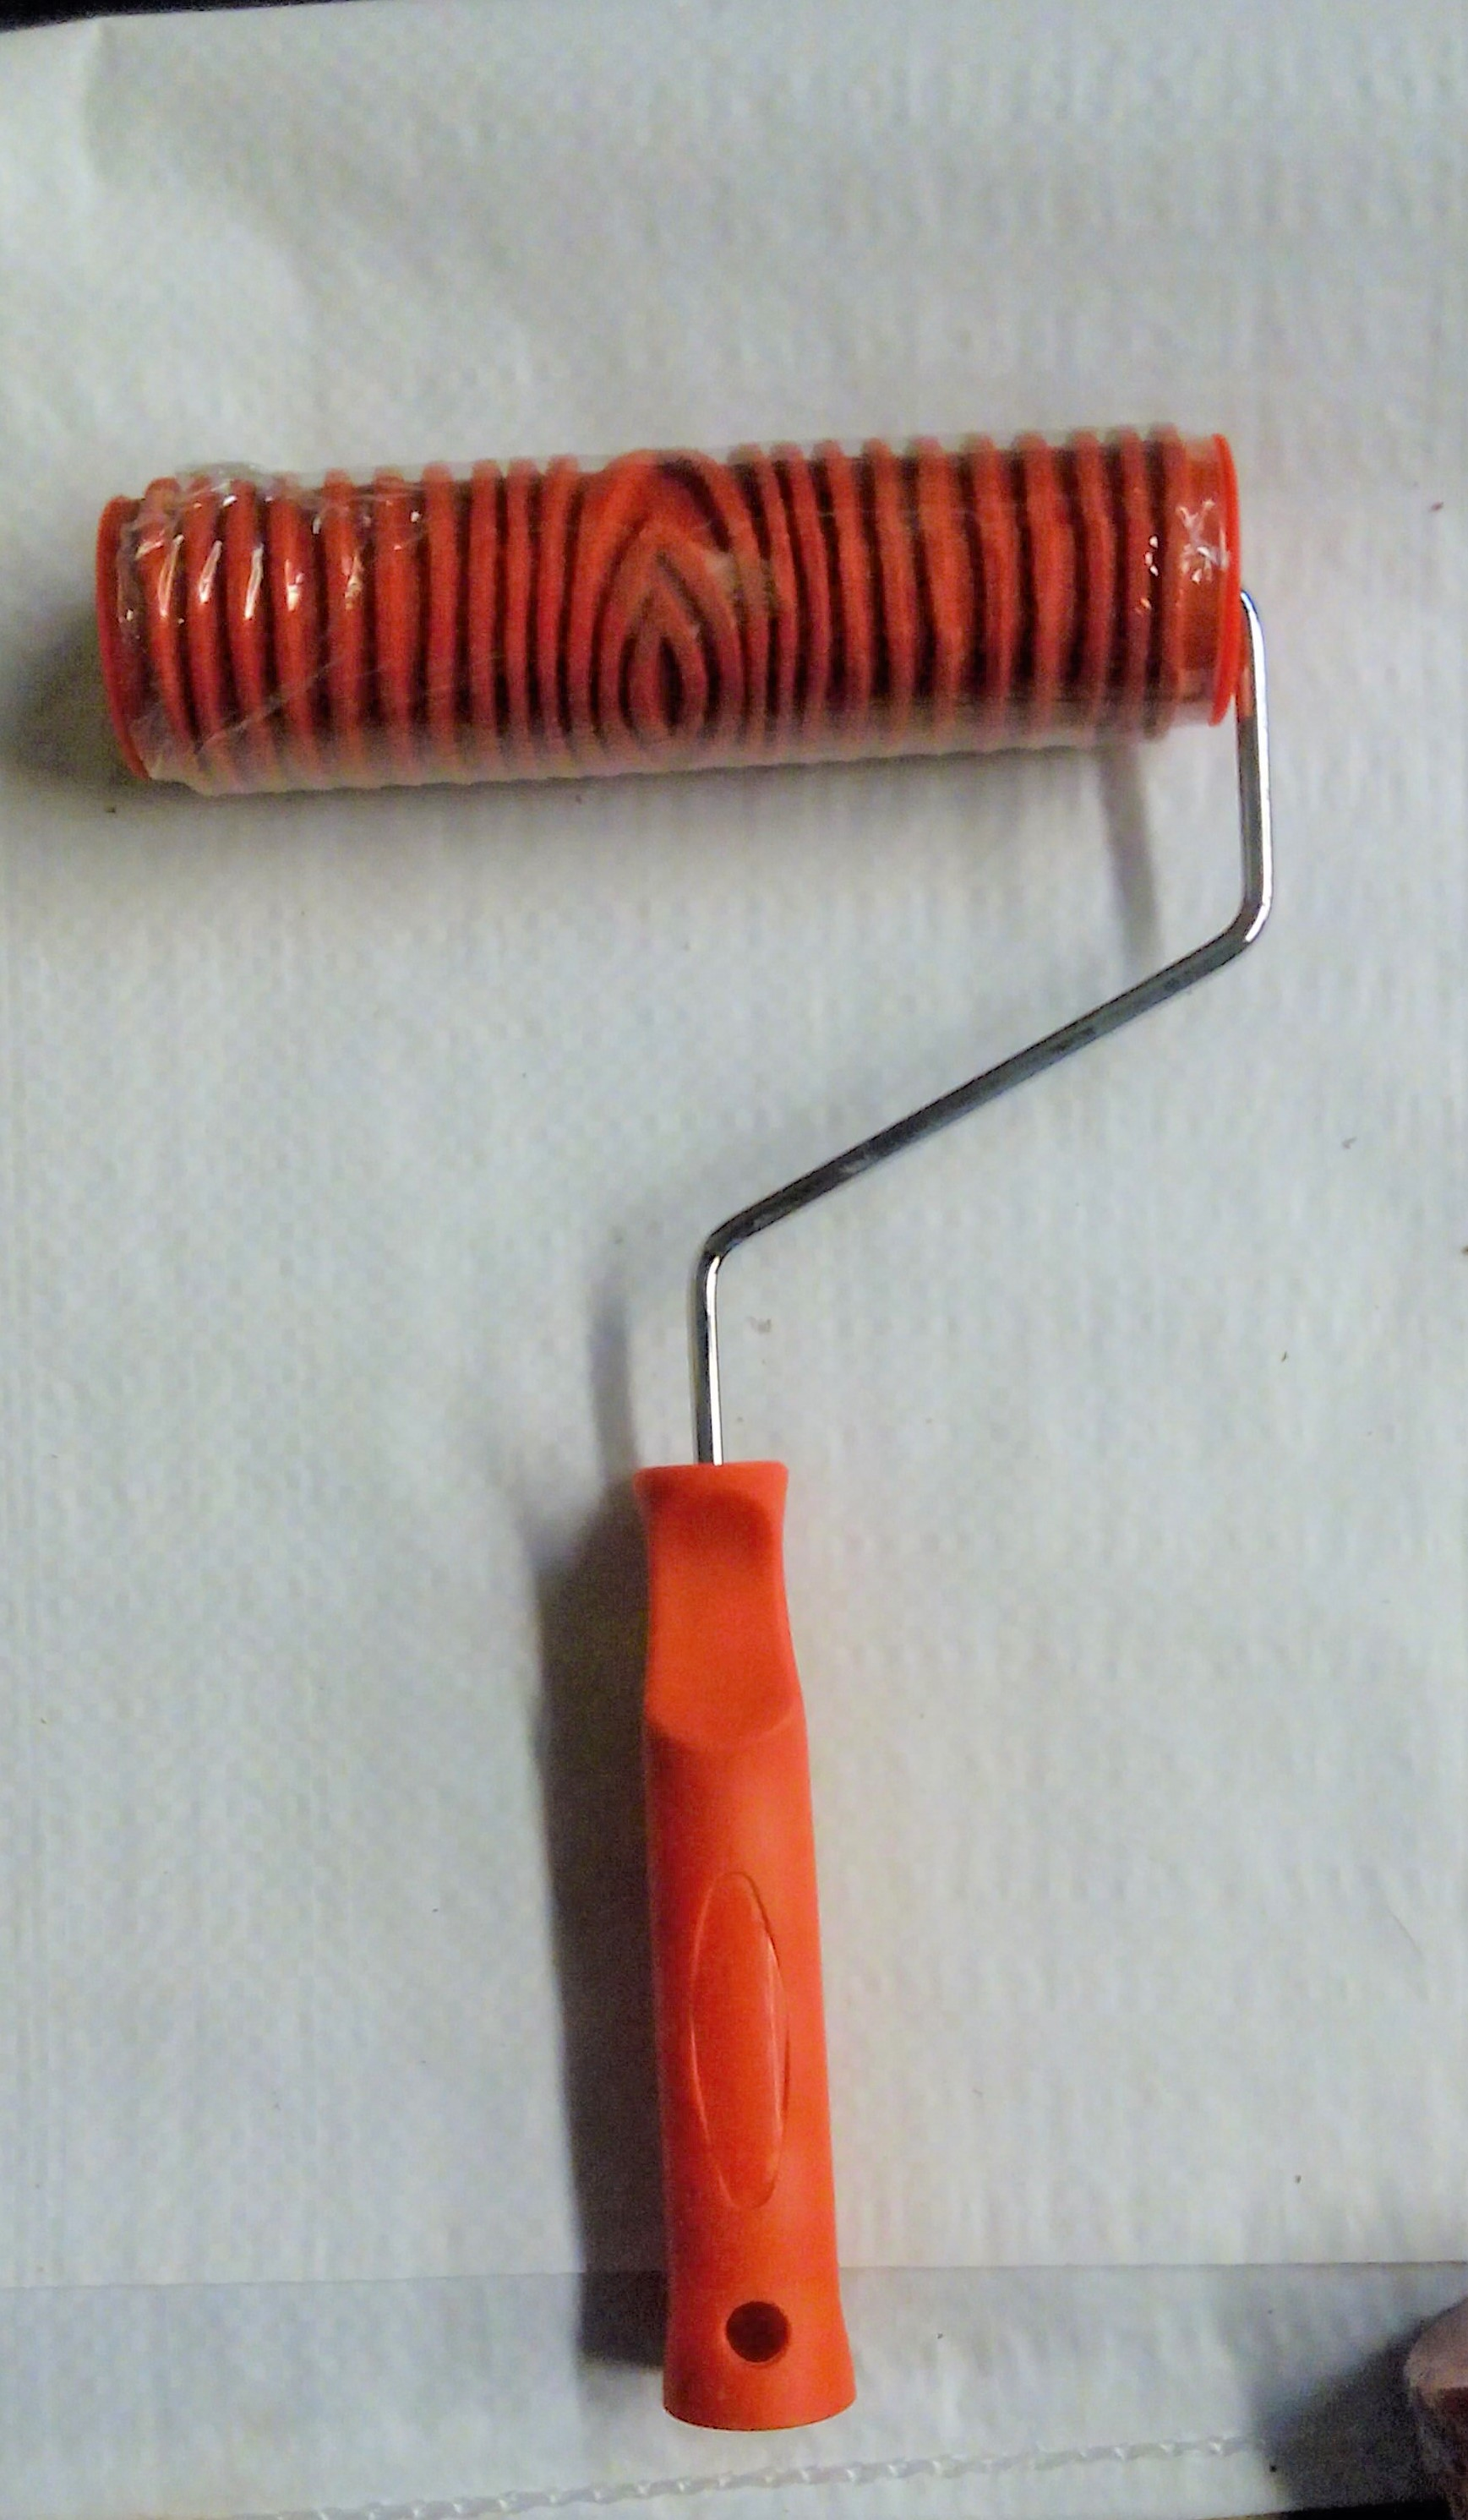 Red Textured Rollers - 7 inches (1501)